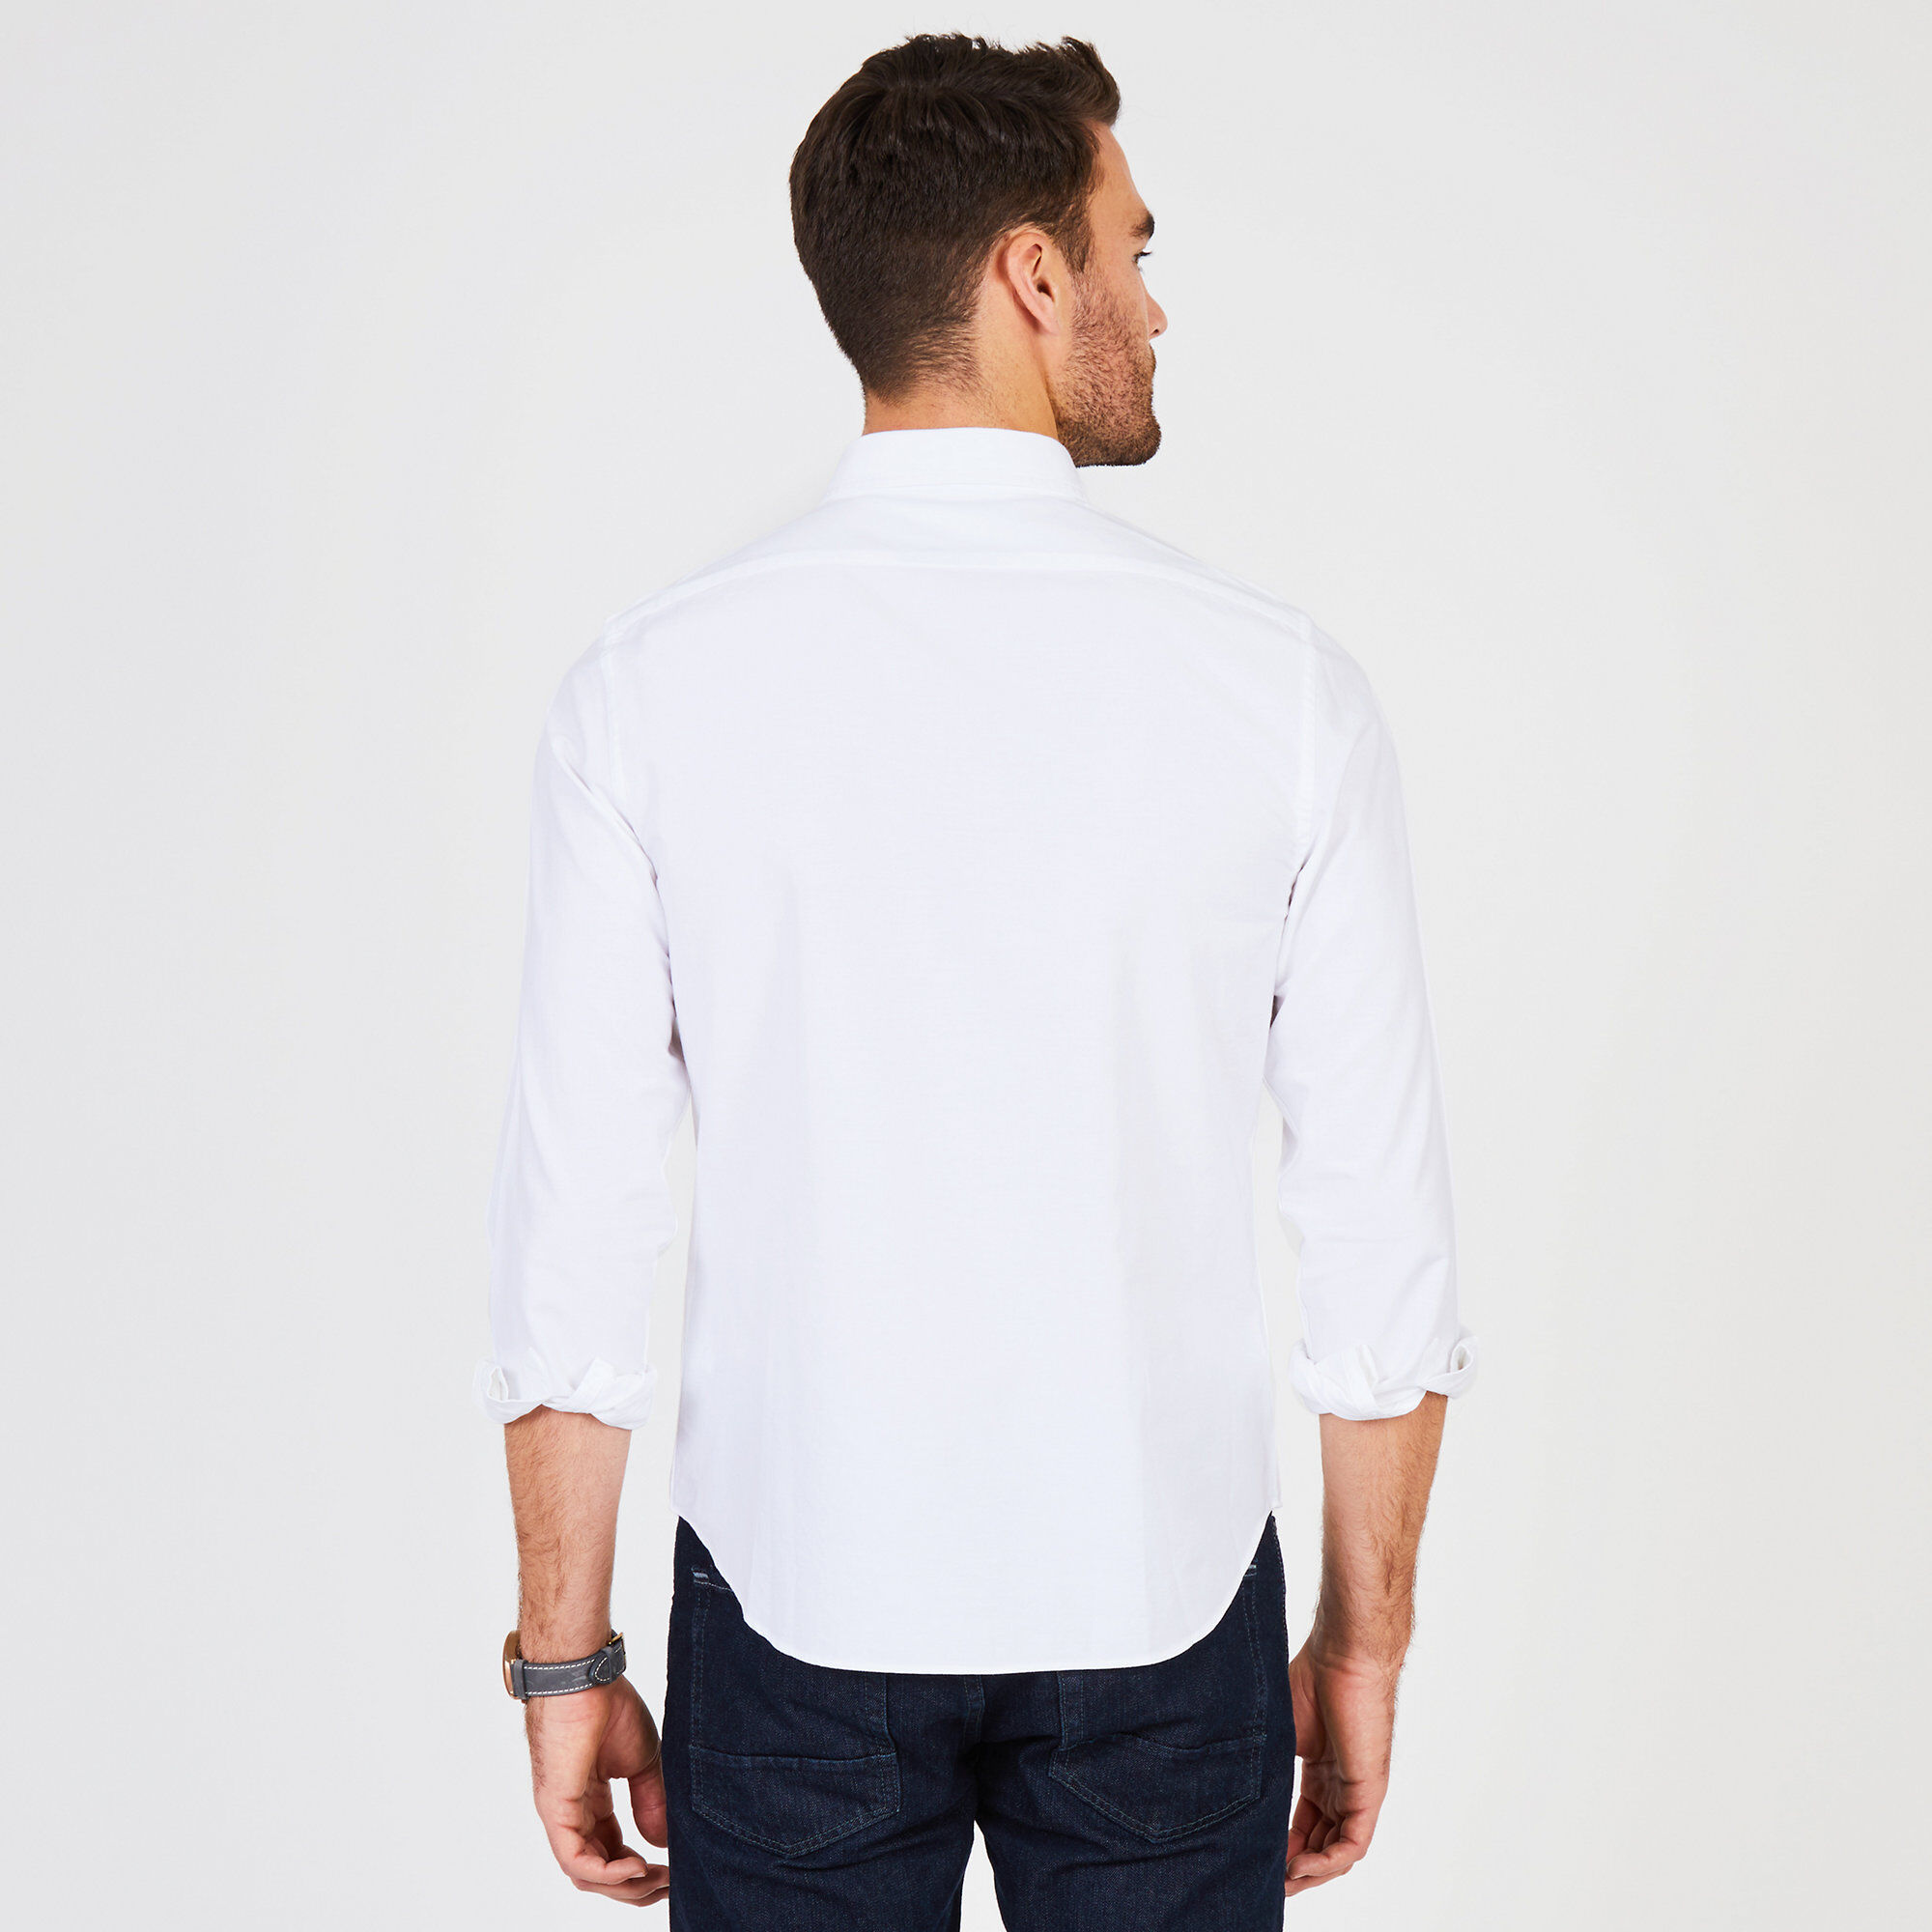 Mens Slim-Fit Dress Shirts Short Sleeve Oxford Solid Button Down Collar